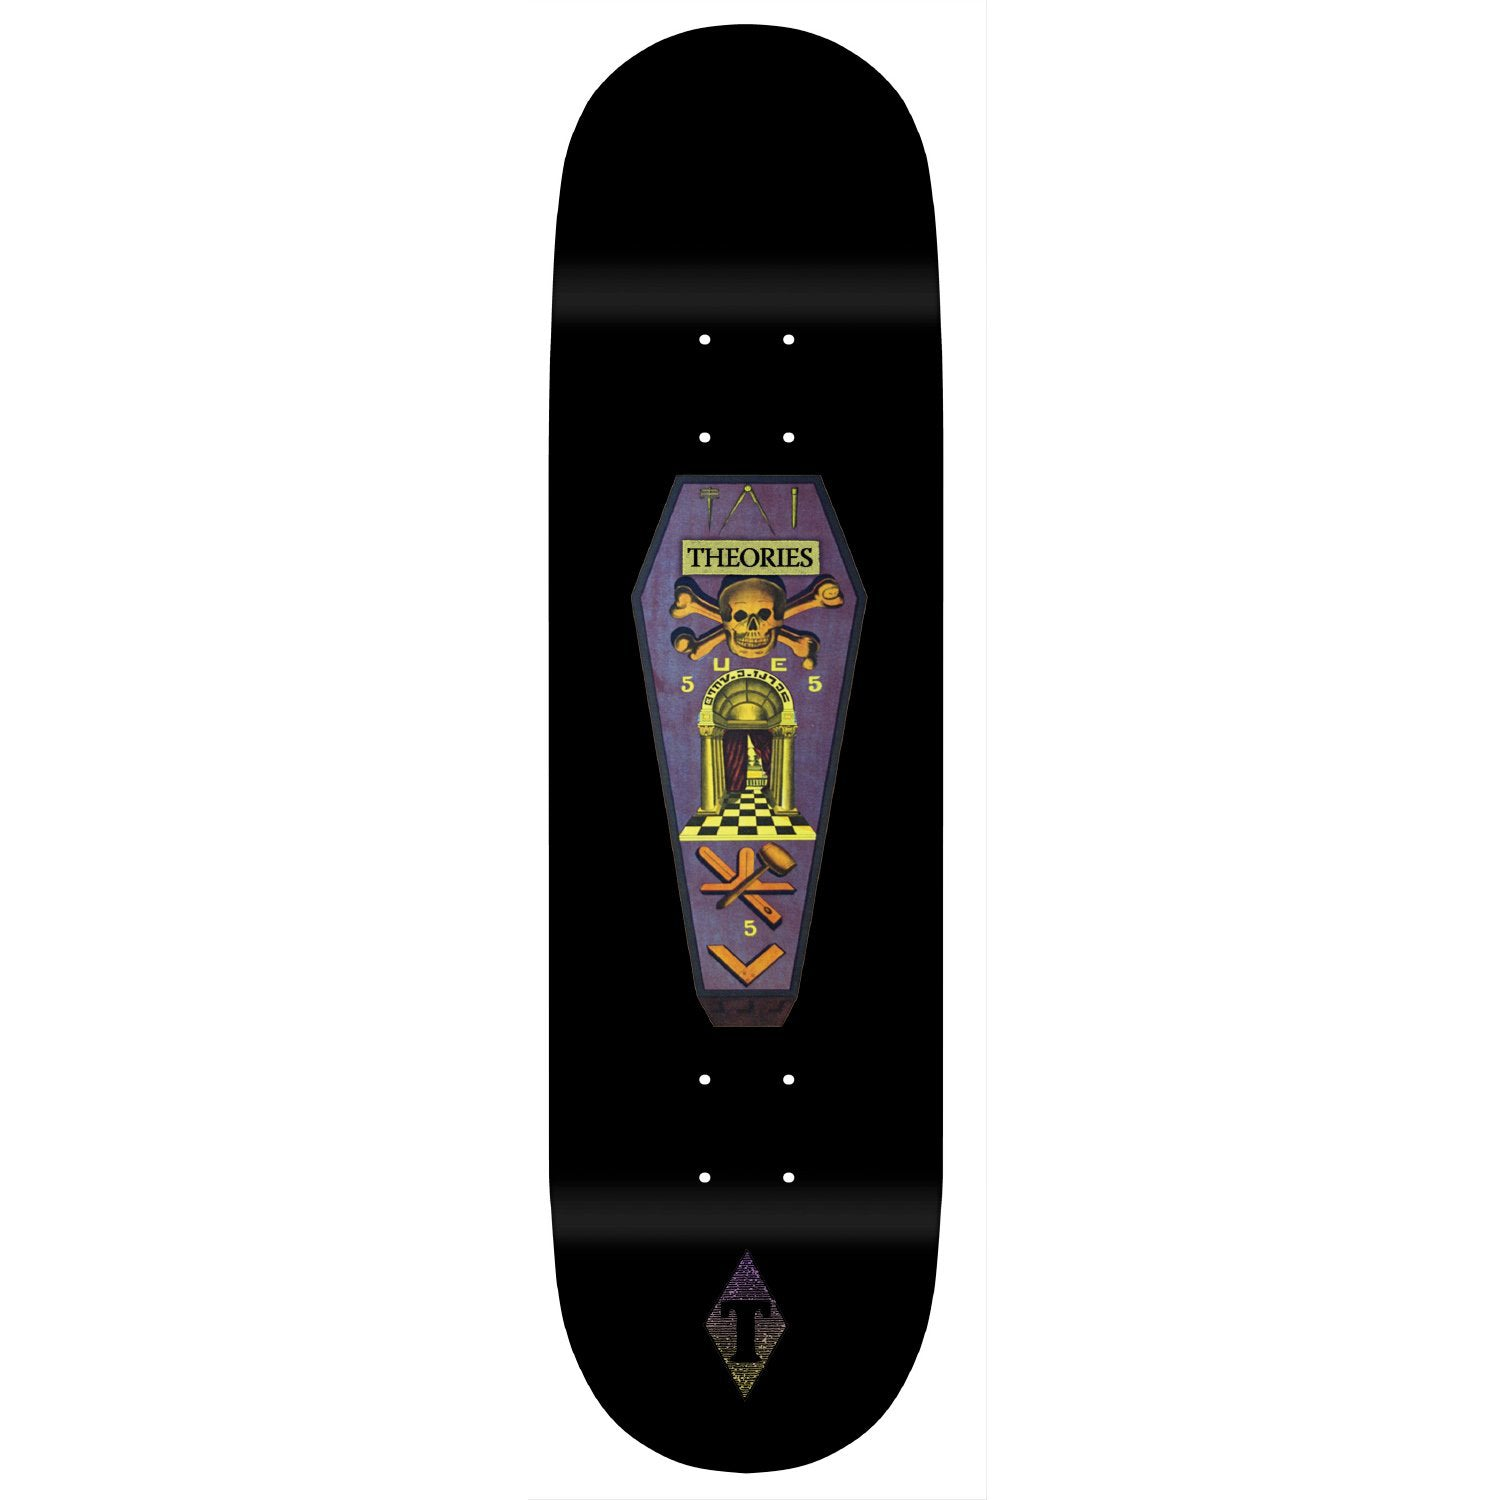 Theories Skate Coffin Deck 8.5""